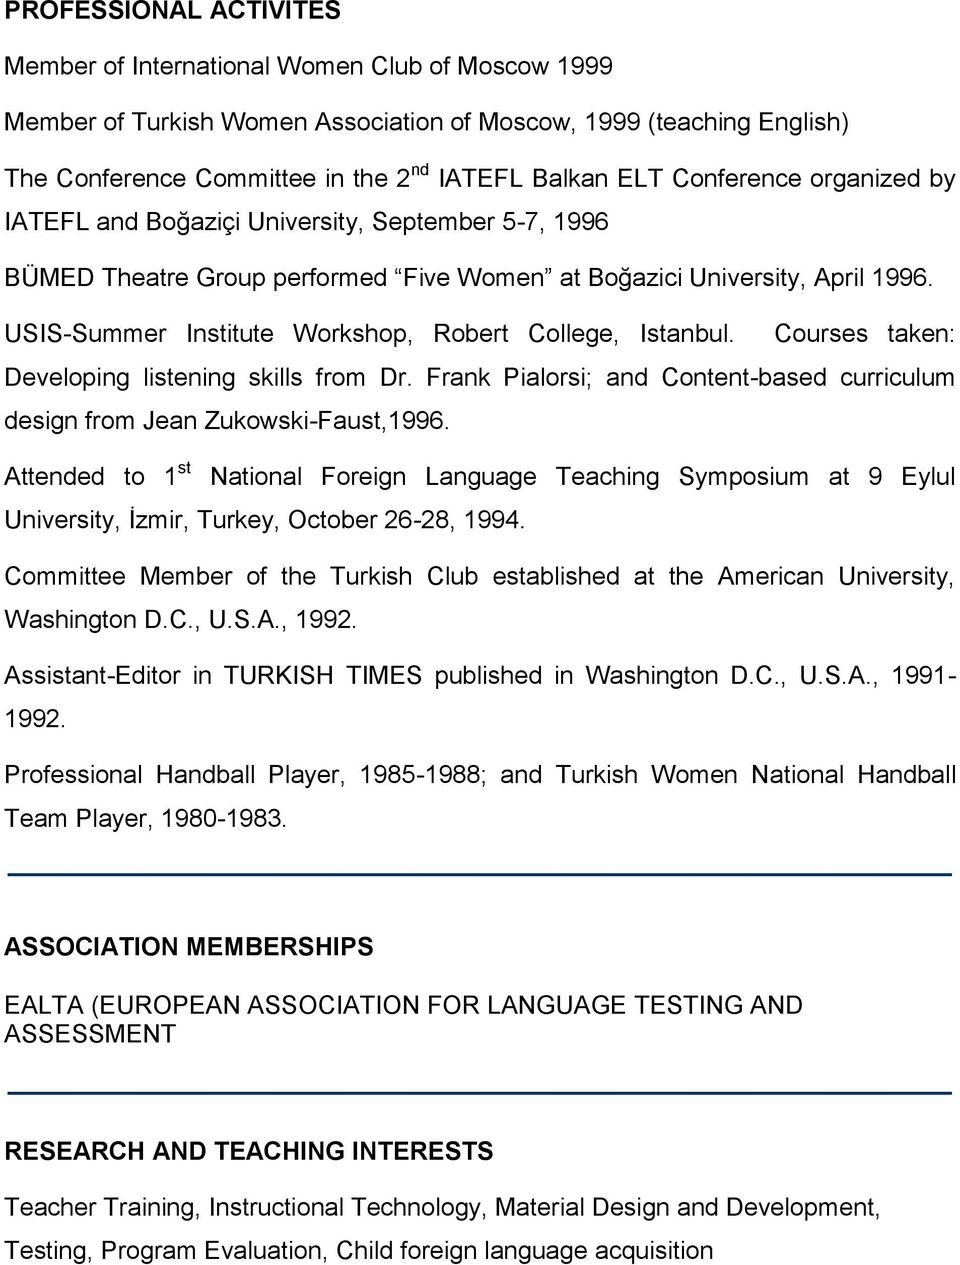 USIS-Summer Institute Workshop, Robert College, Istanbul. Courses taken: Developing listening skills from Dr. Frank Pialorsi; and Content-based curriculum design from Jean Zukowski-Faust,1996.